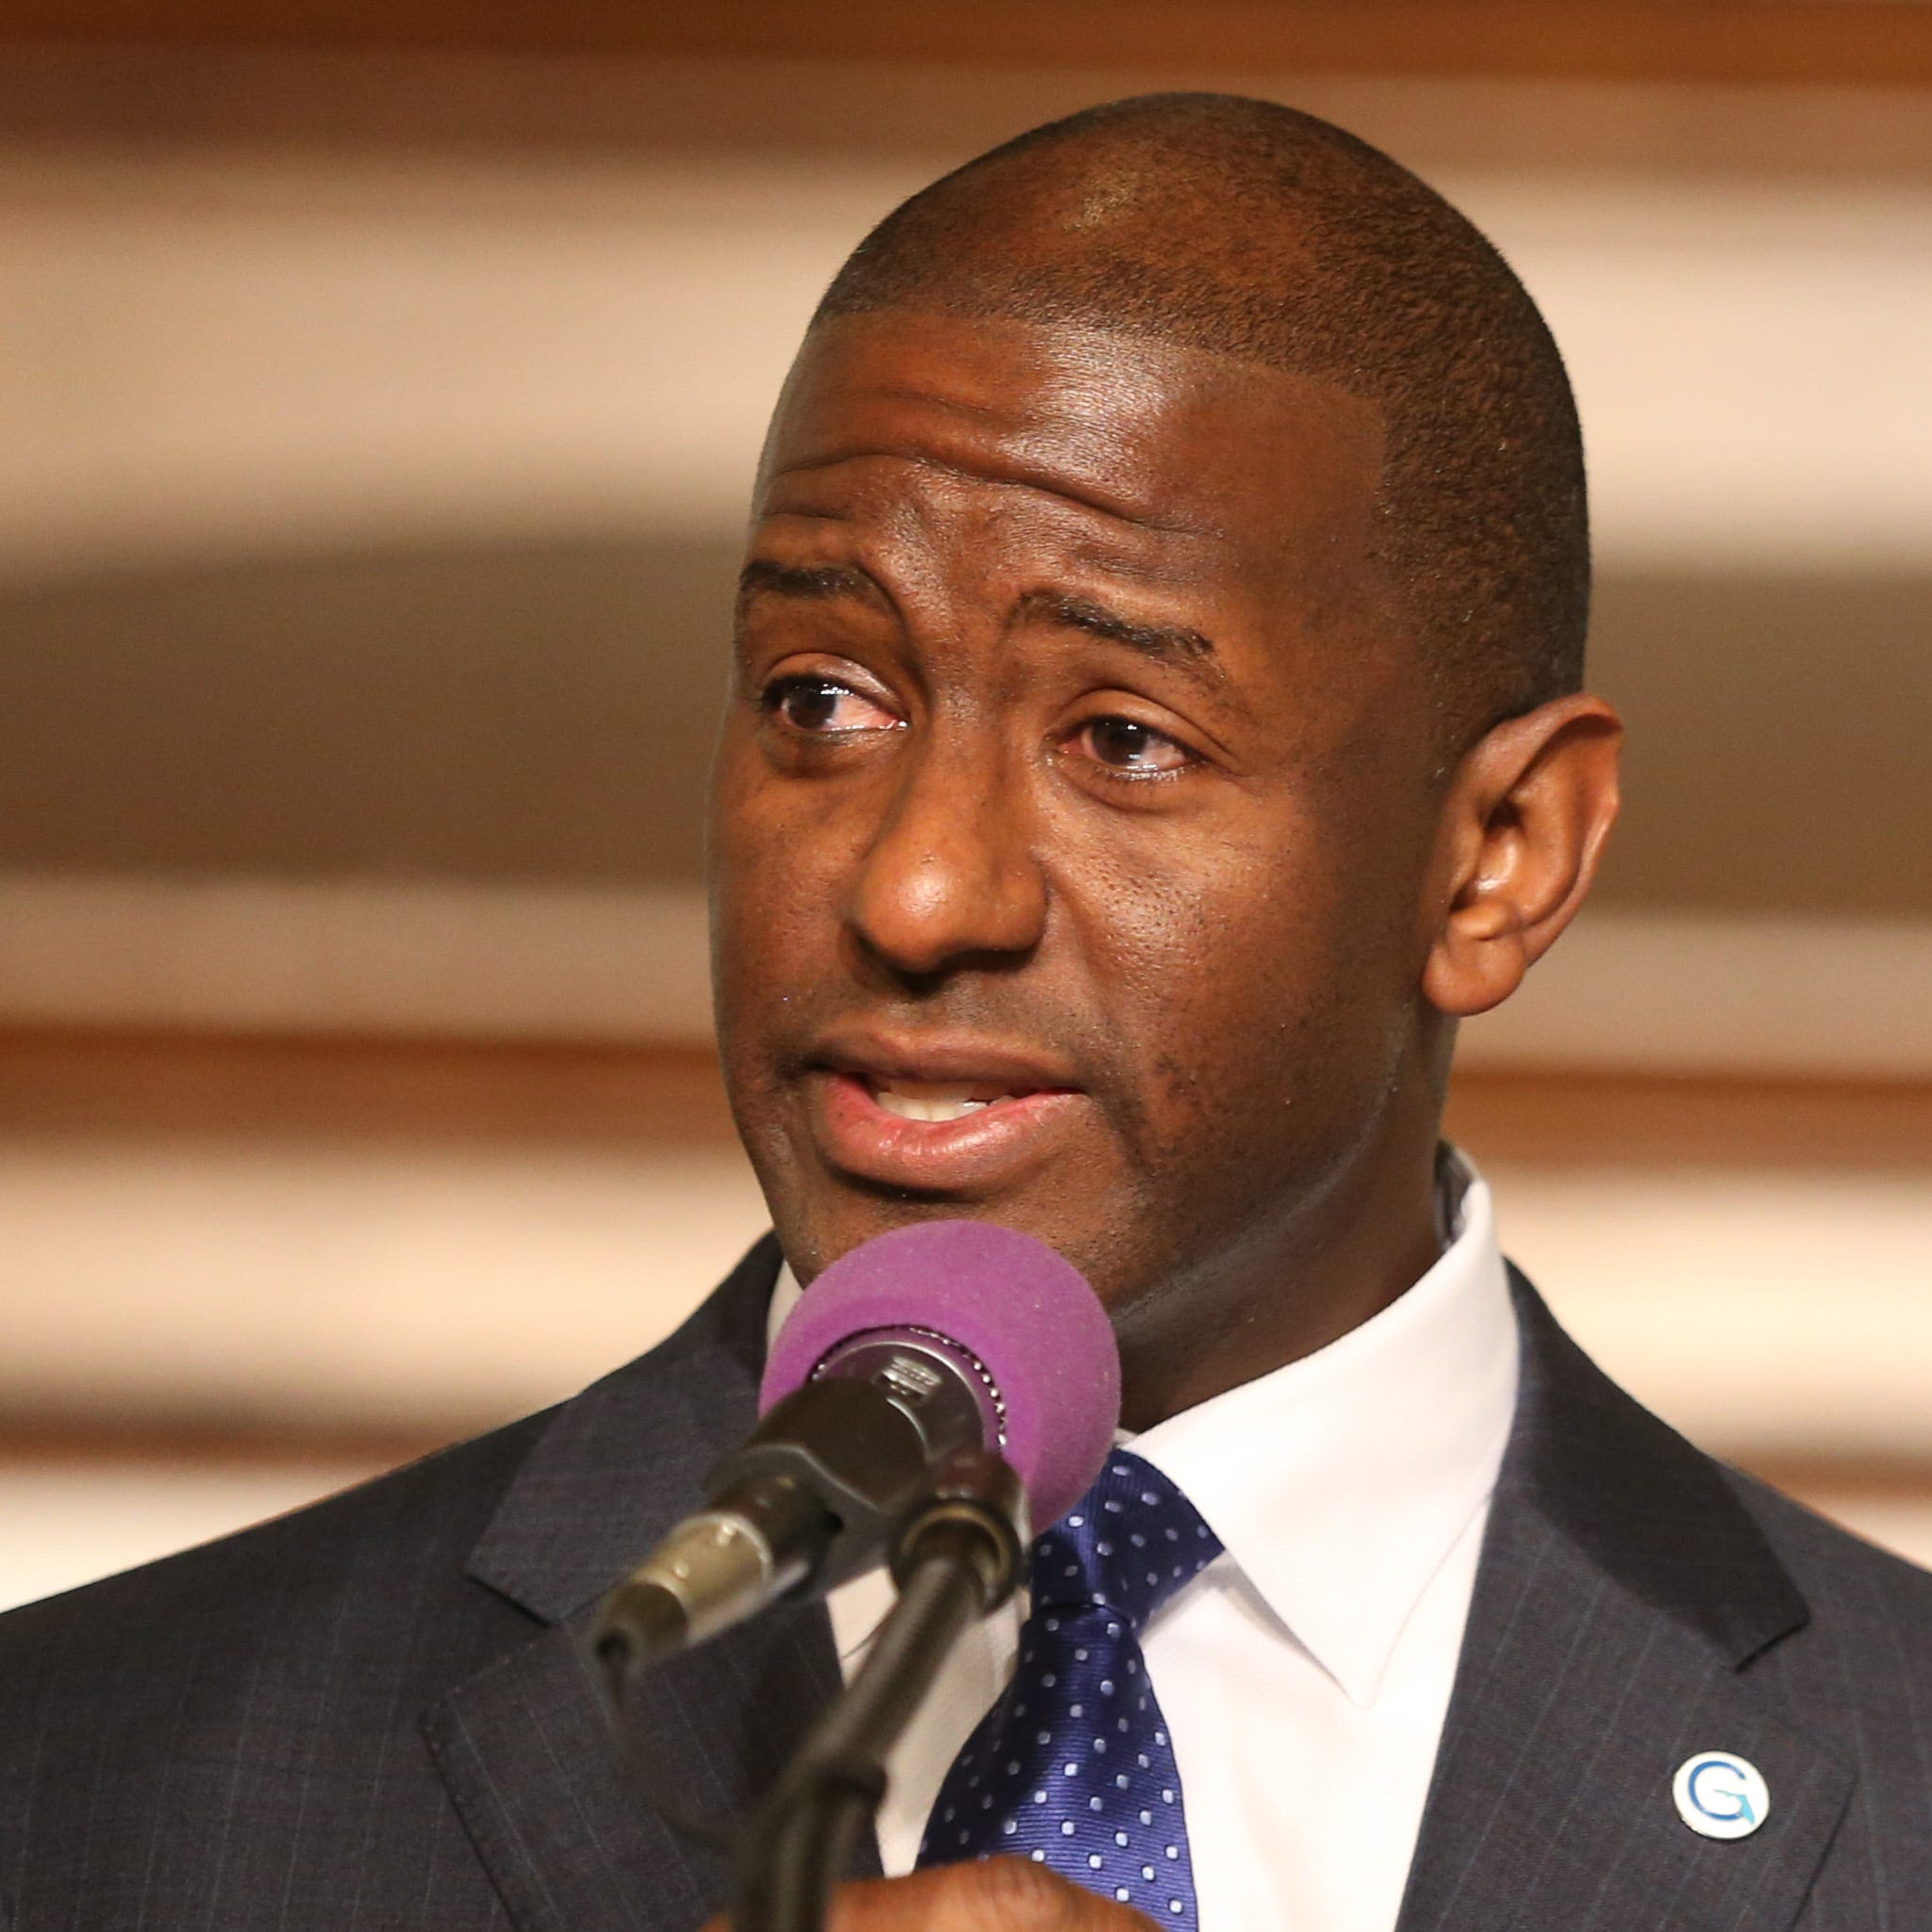 After recount, chorus gets louder for Andrew Gillum to concede Florida governor's race